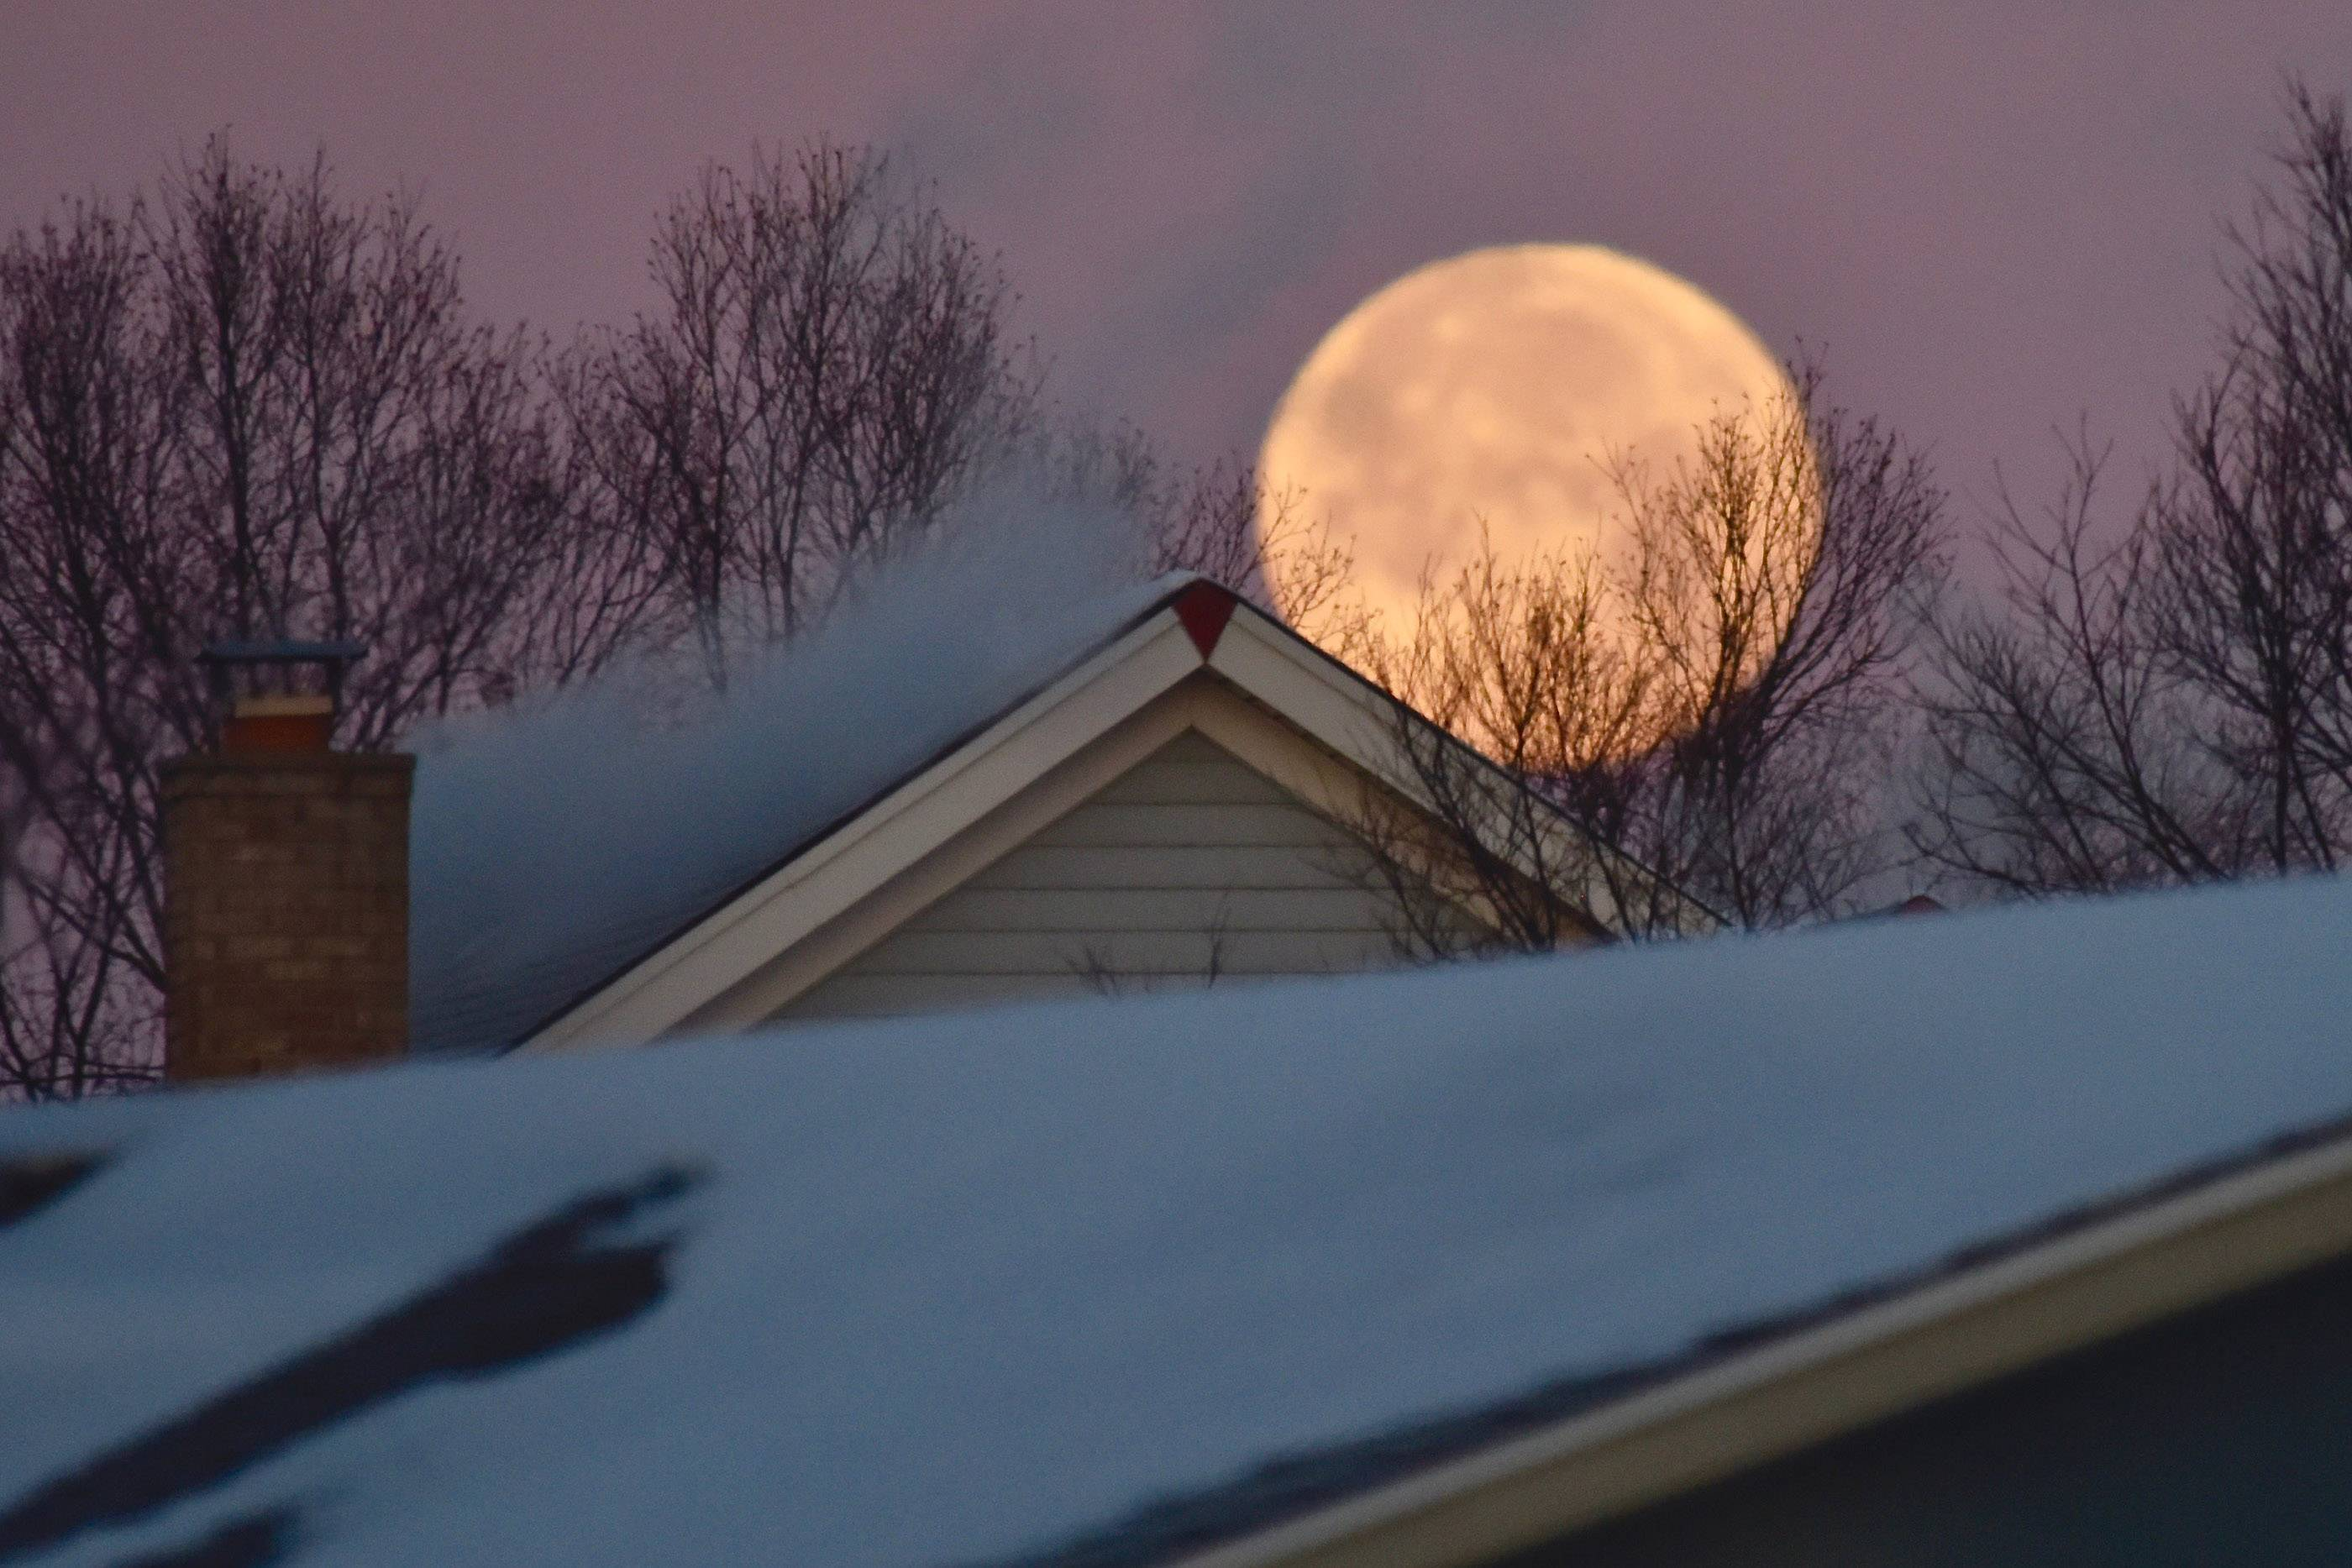 "A ""Super Moon"" sets over the Elk Grove Village rooftops in the early morning hours as temperatures hover below zero on January 2. The visual size of the moon is highlighted by the smoking chimney, roof lines and trees in the foreground."